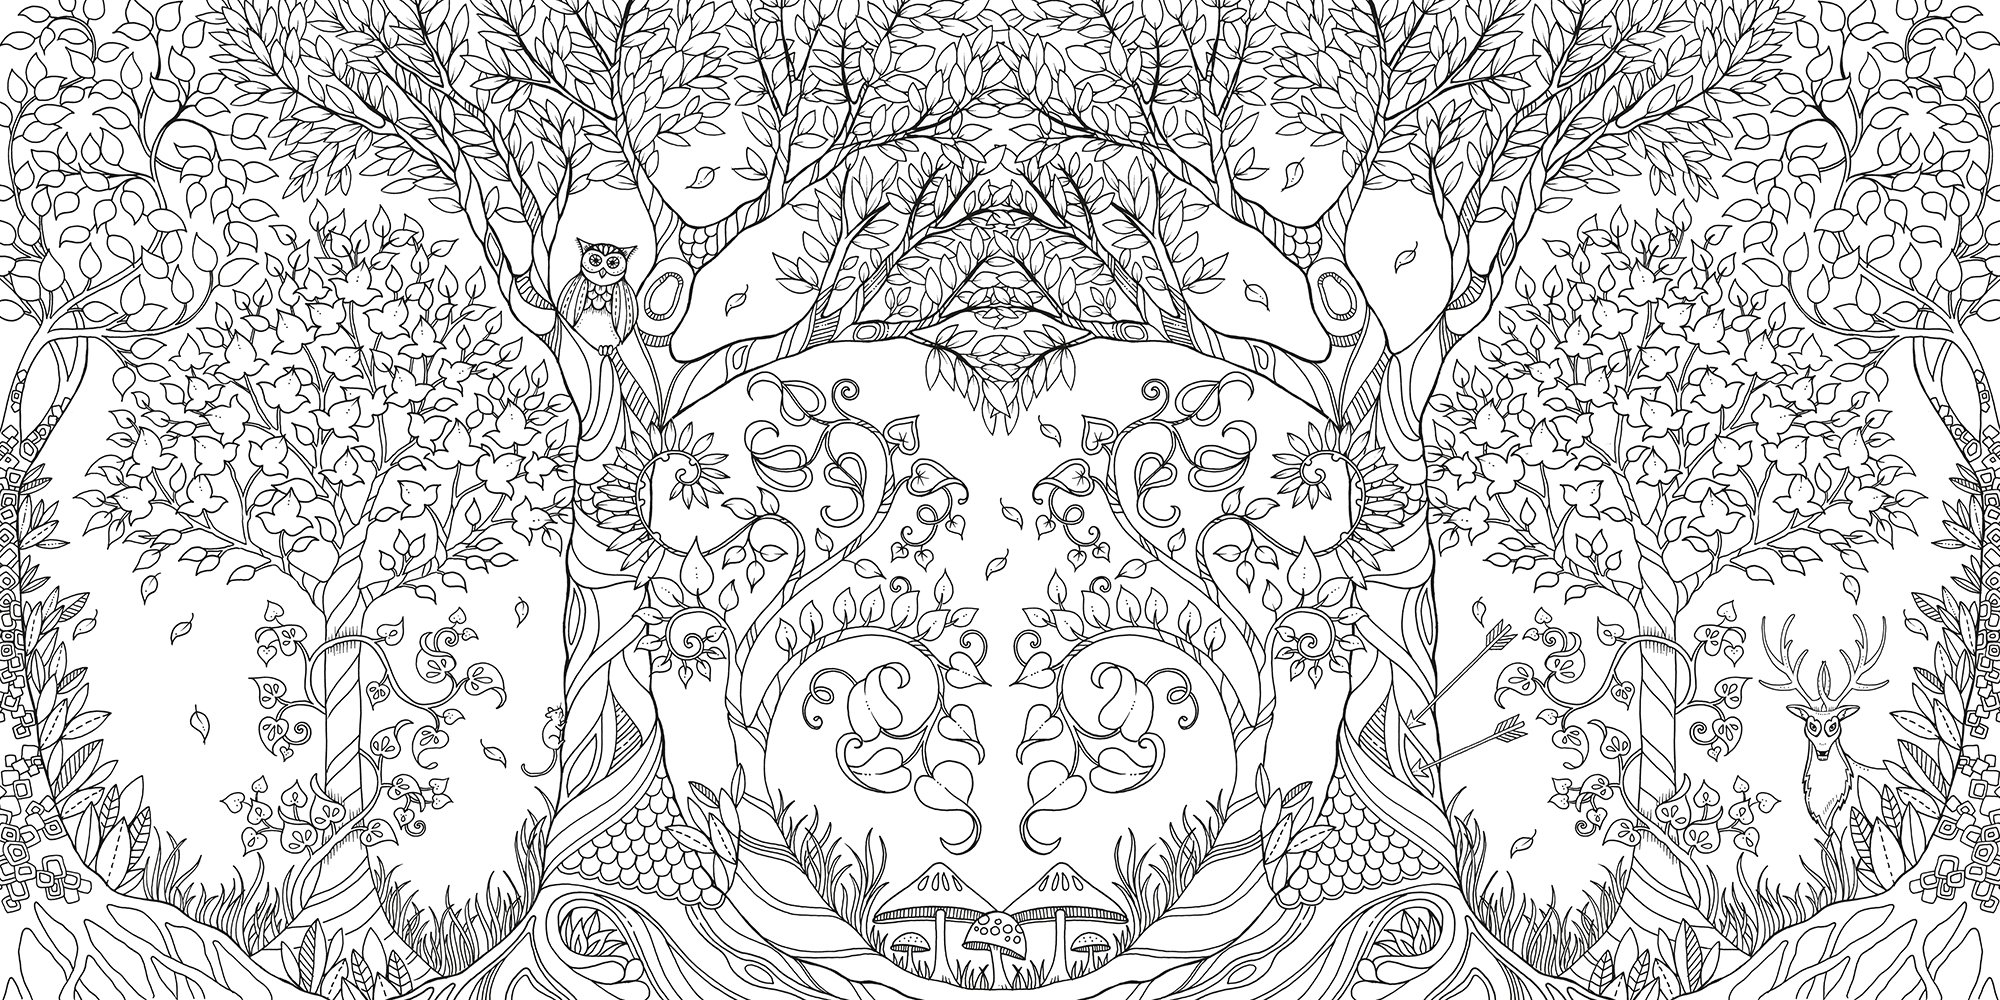 Amazon.com: Enchanted Forest: An Inky Quest & Coloring Book ...